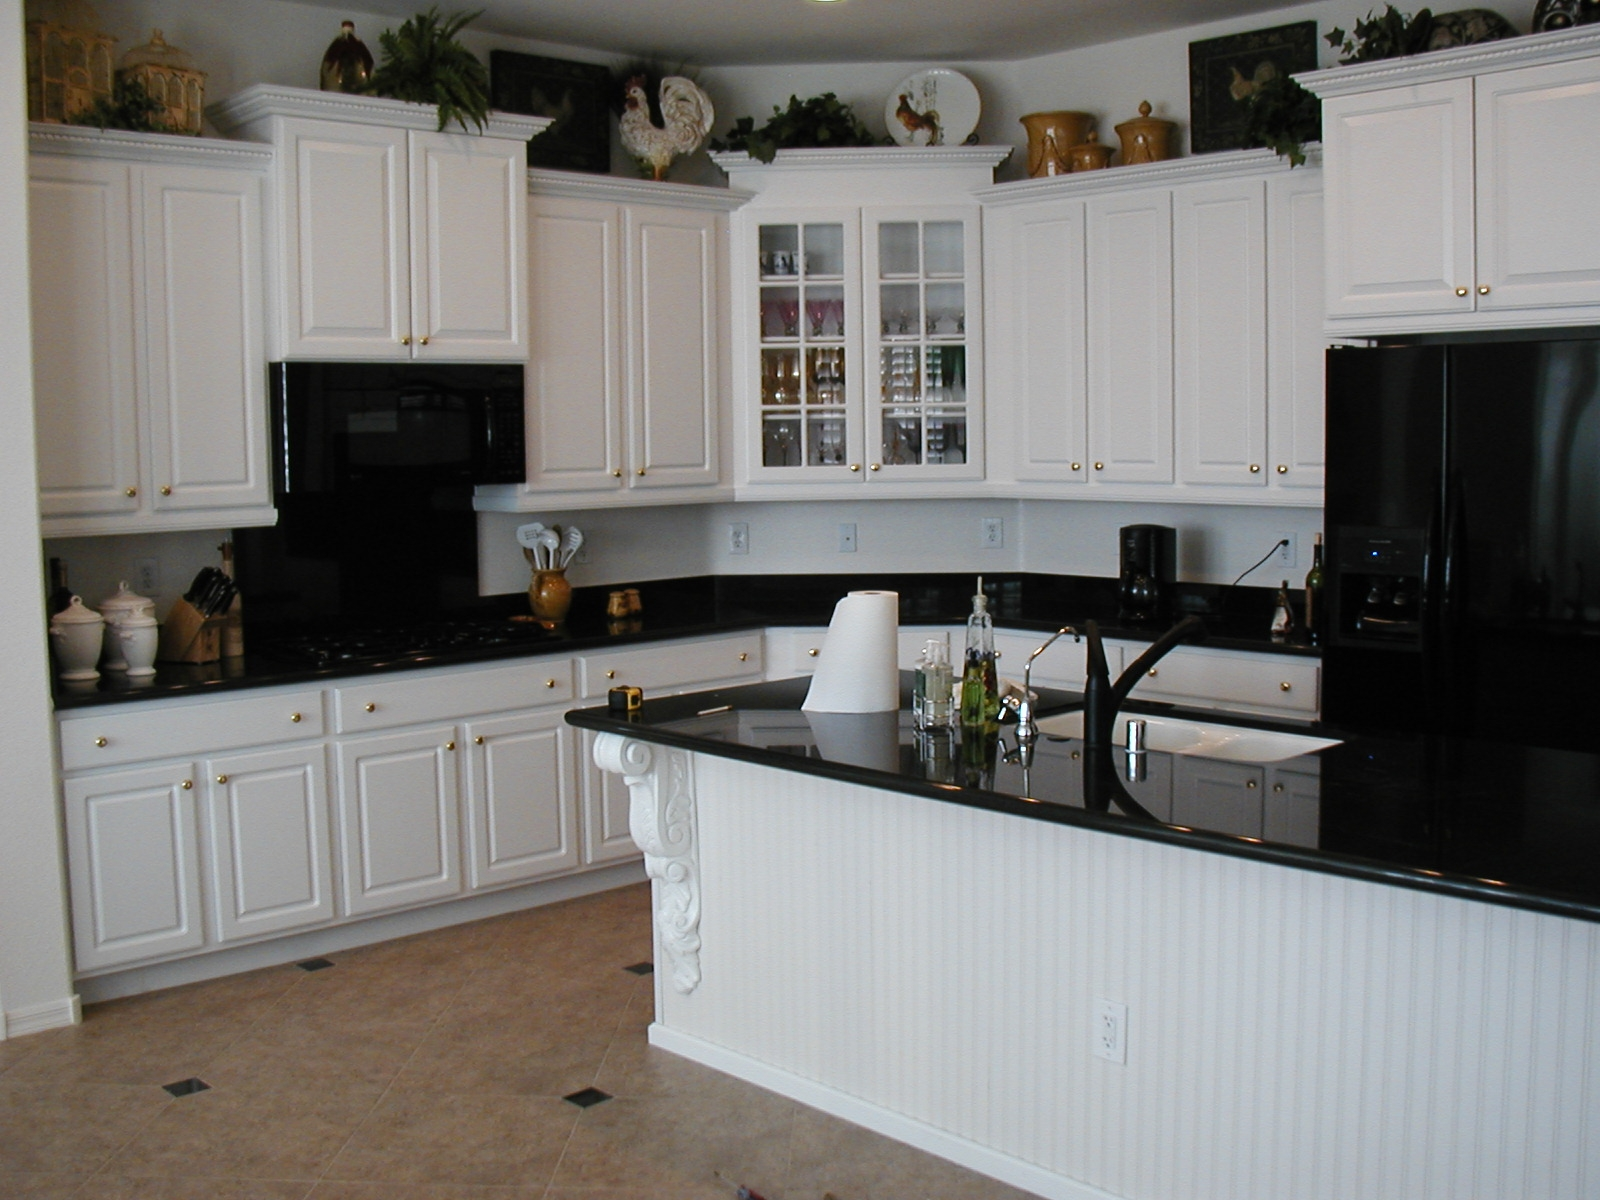 White Cabinets with Black Appliances